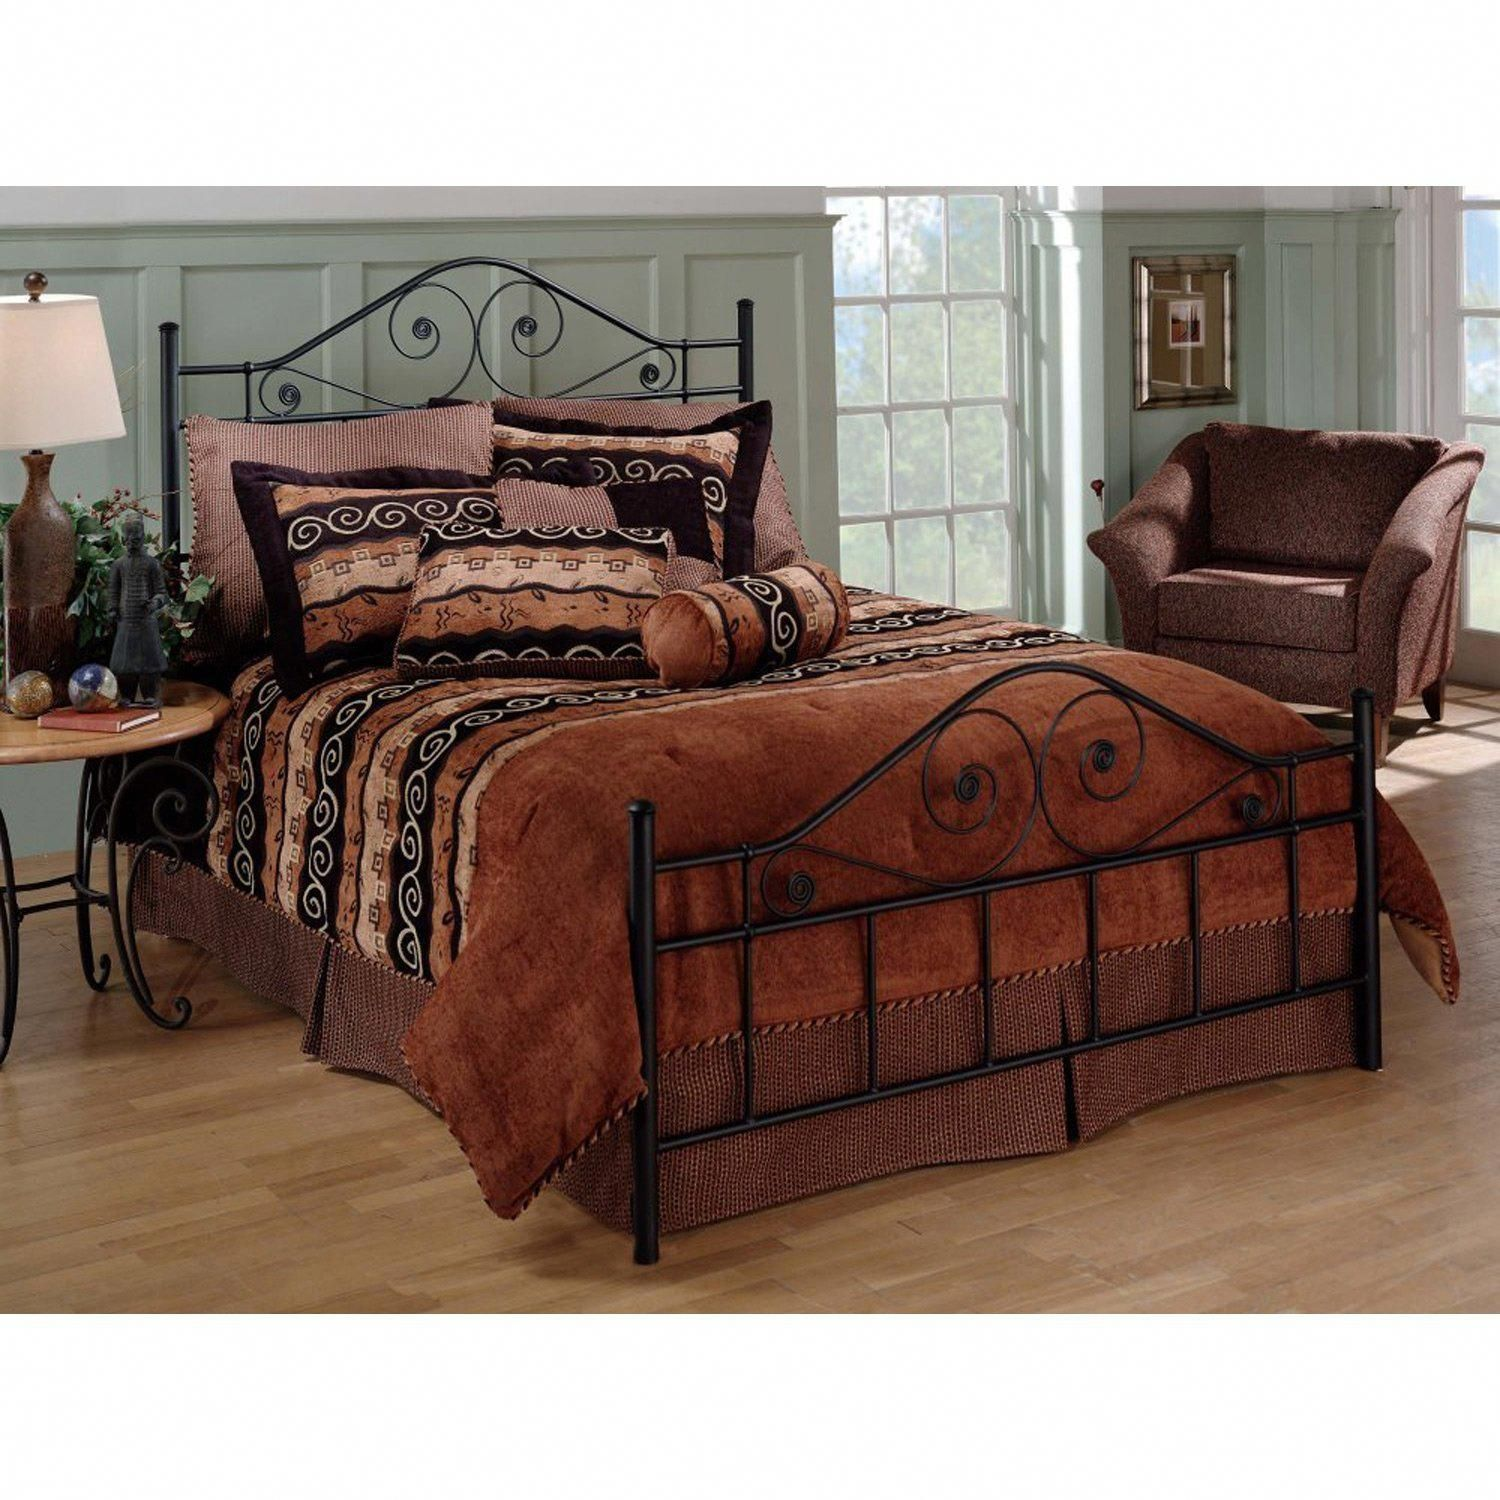 Best Queen Size Black Metal Bed With Scrollwork Headboard And Footboard Full Bedding Sets Bedroom 400 x 300